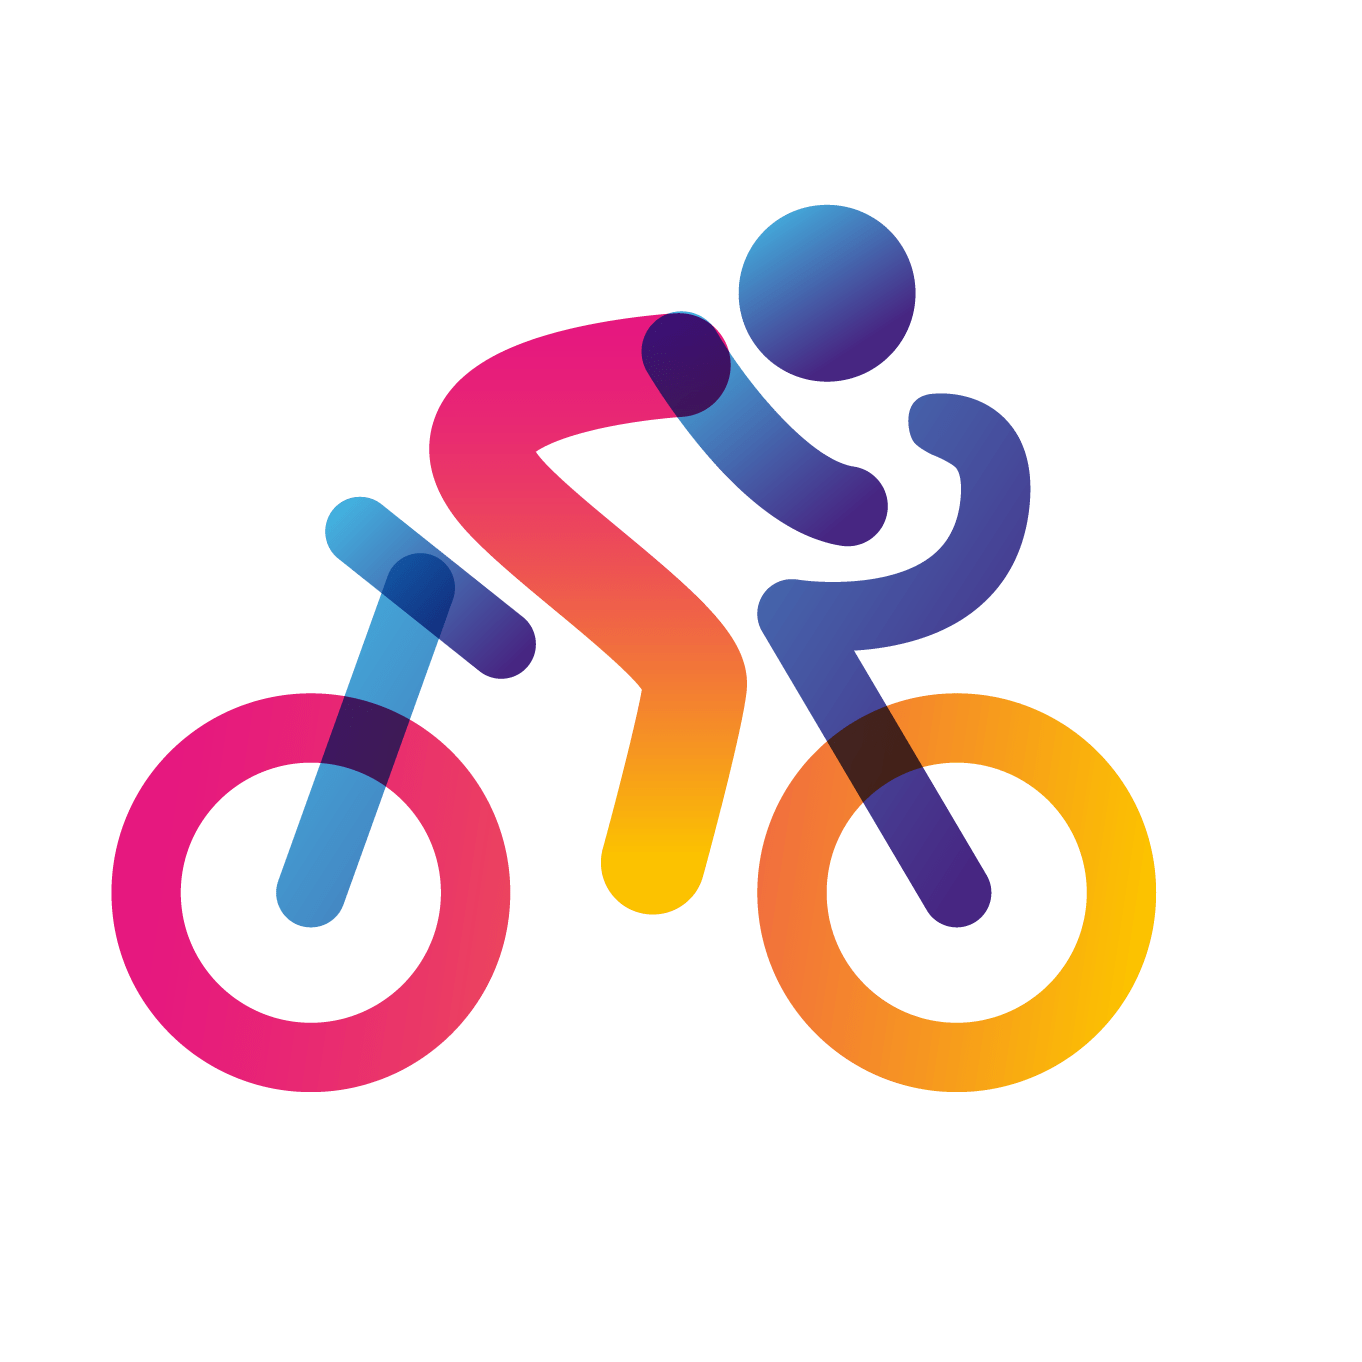 person riding a bicycle icon